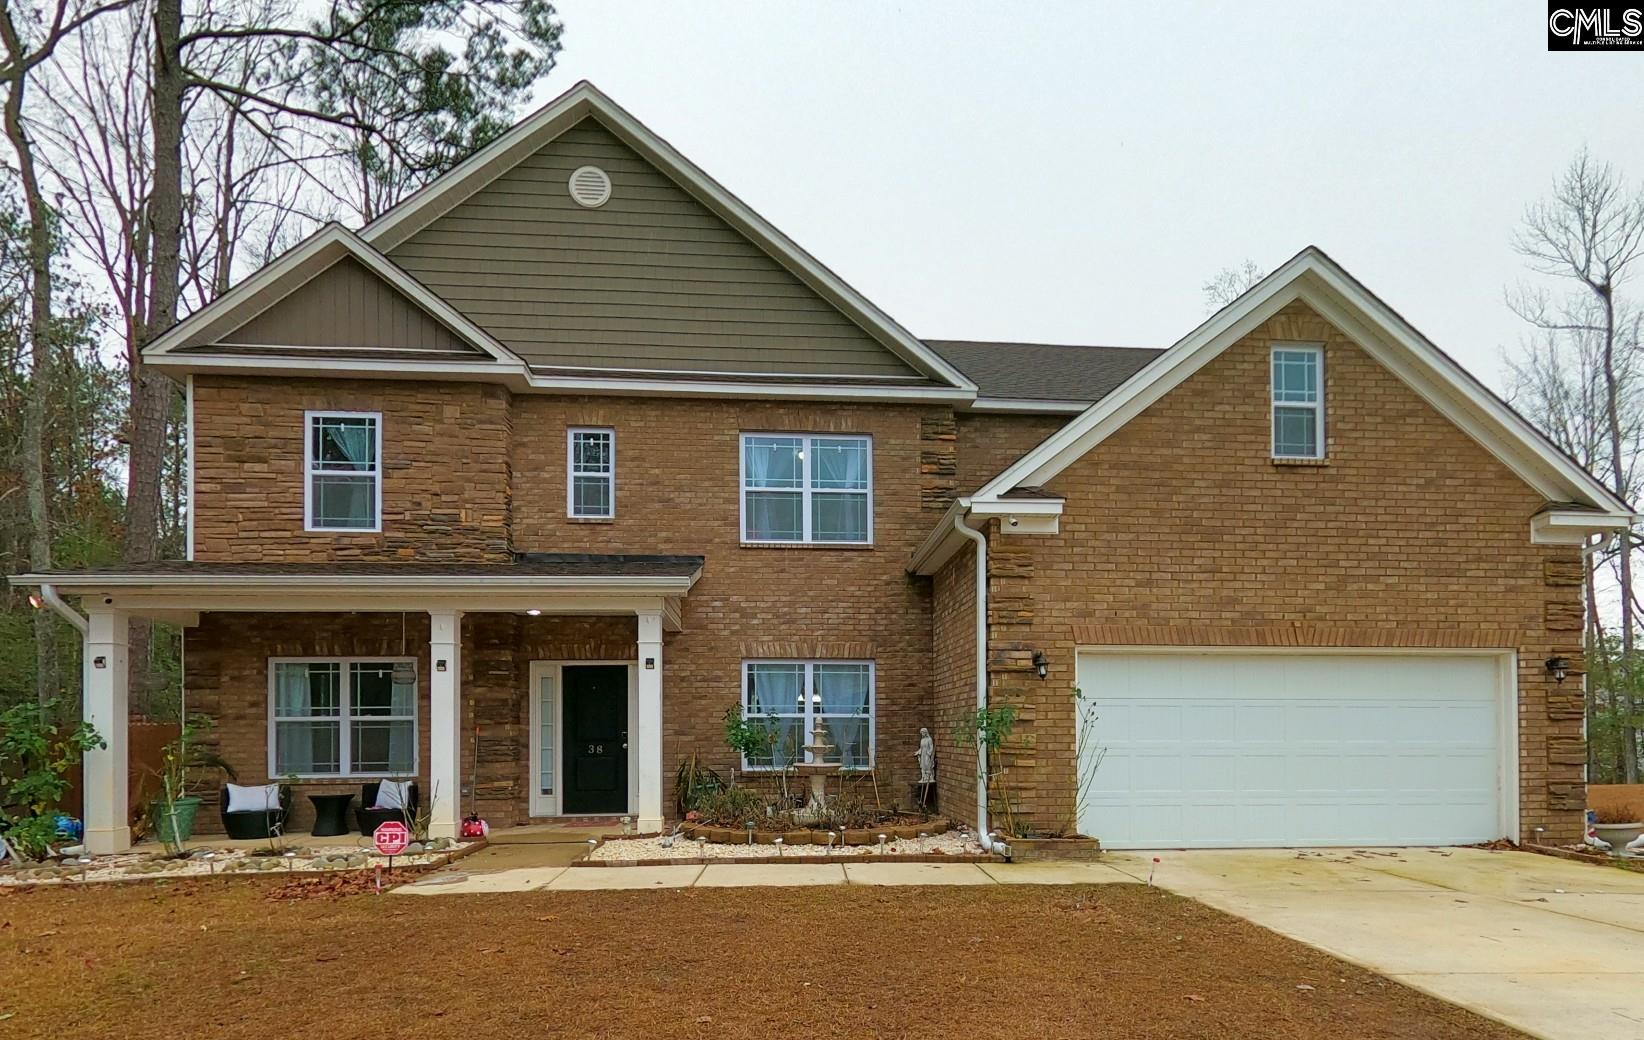 38 Athlone Court Blythewood, SC 29016